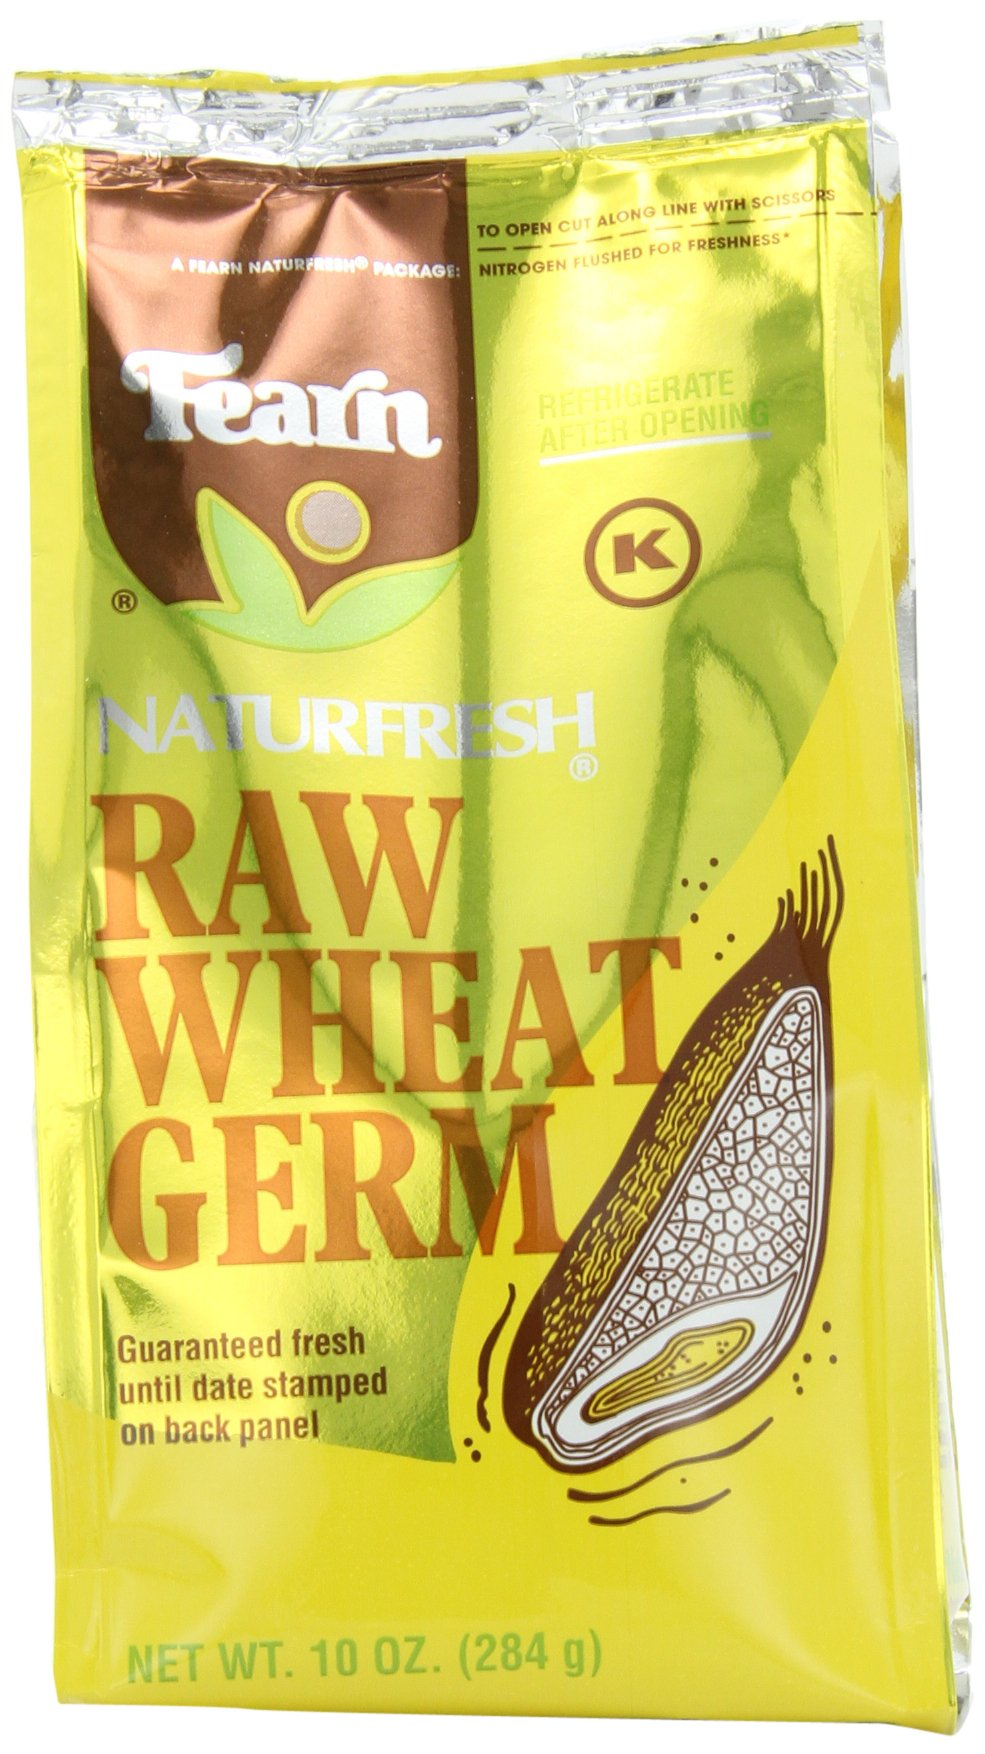 Fearn NaturFresh Raw Wheat Germ, 10 Ounce (Pack of 12)